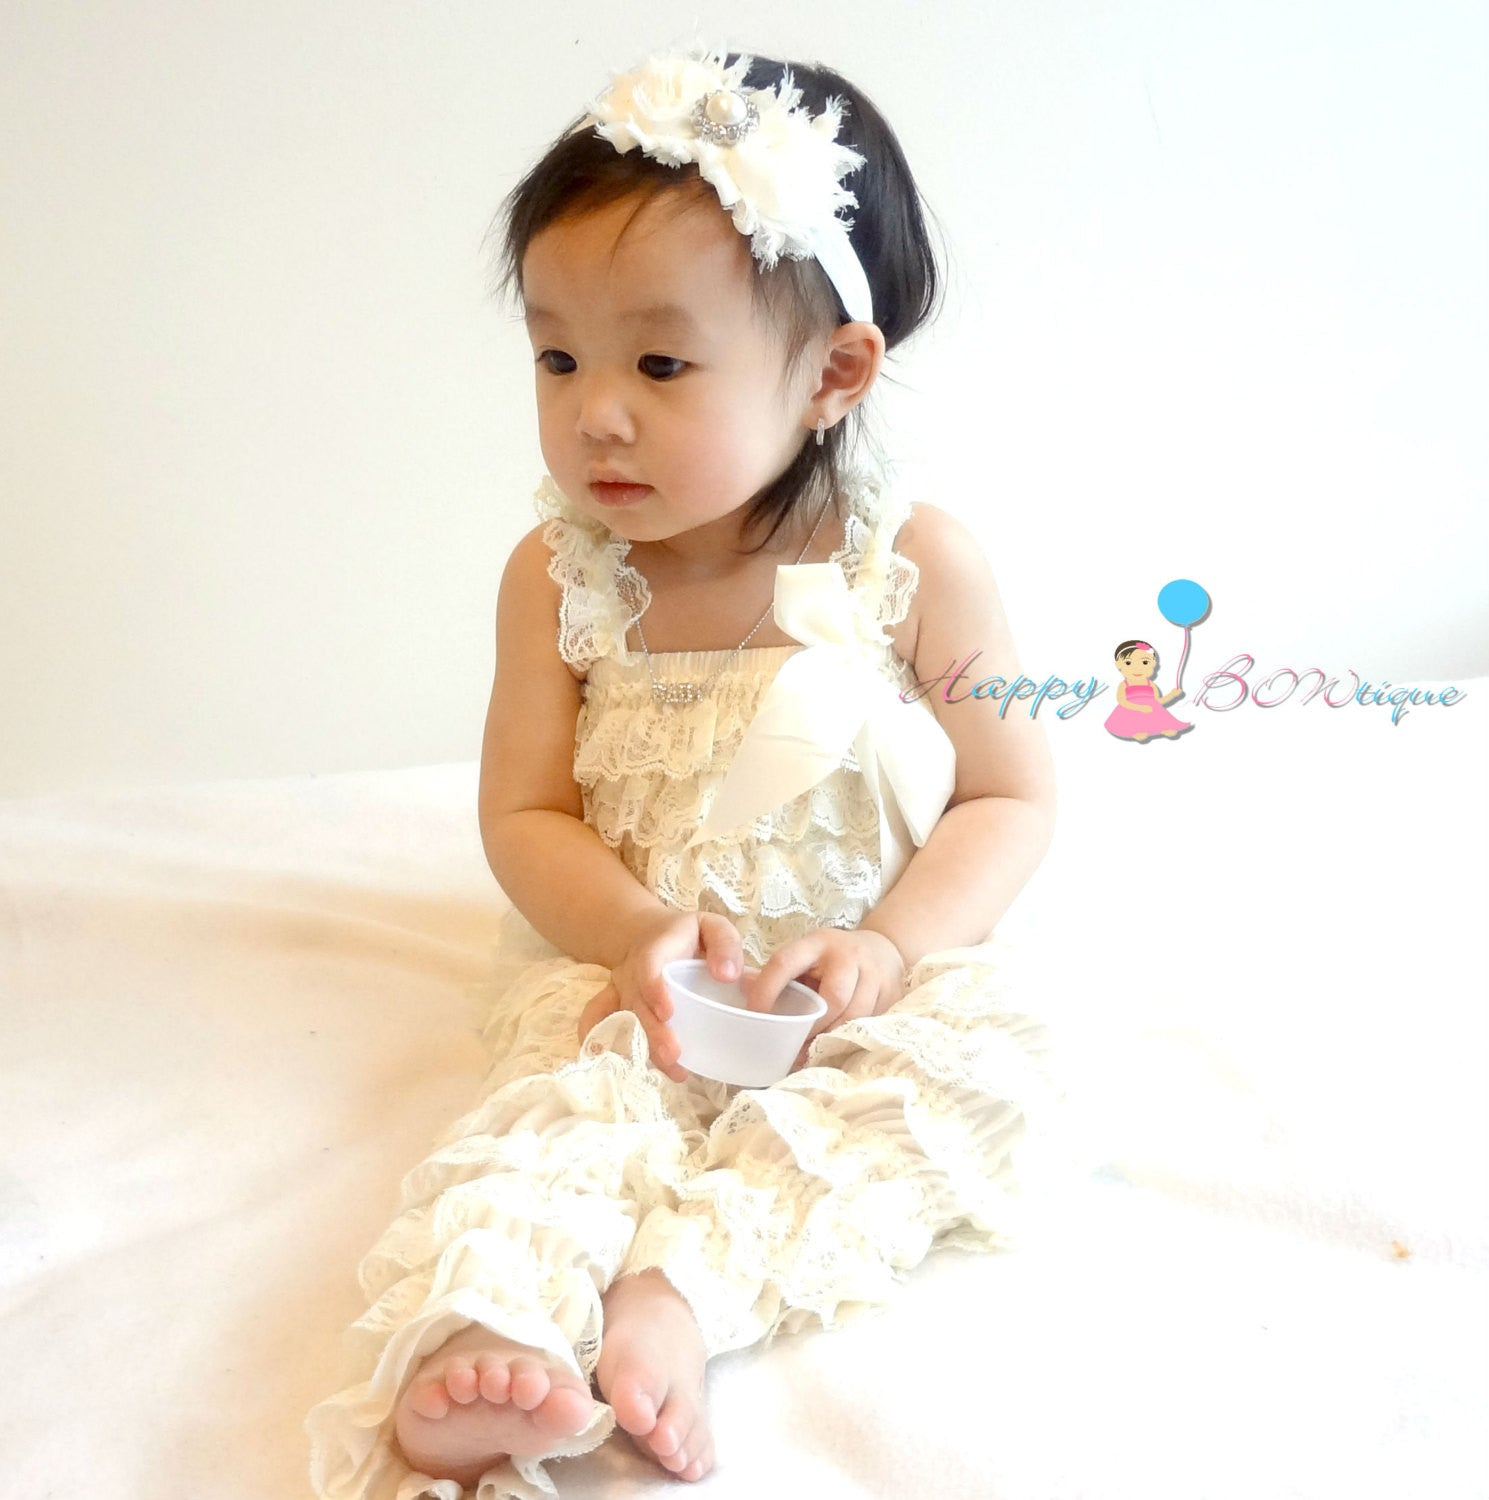 Vintage Ivory Petti Lace Romper set - Happy BOWtique - children's clothing, Baby Girl clothing